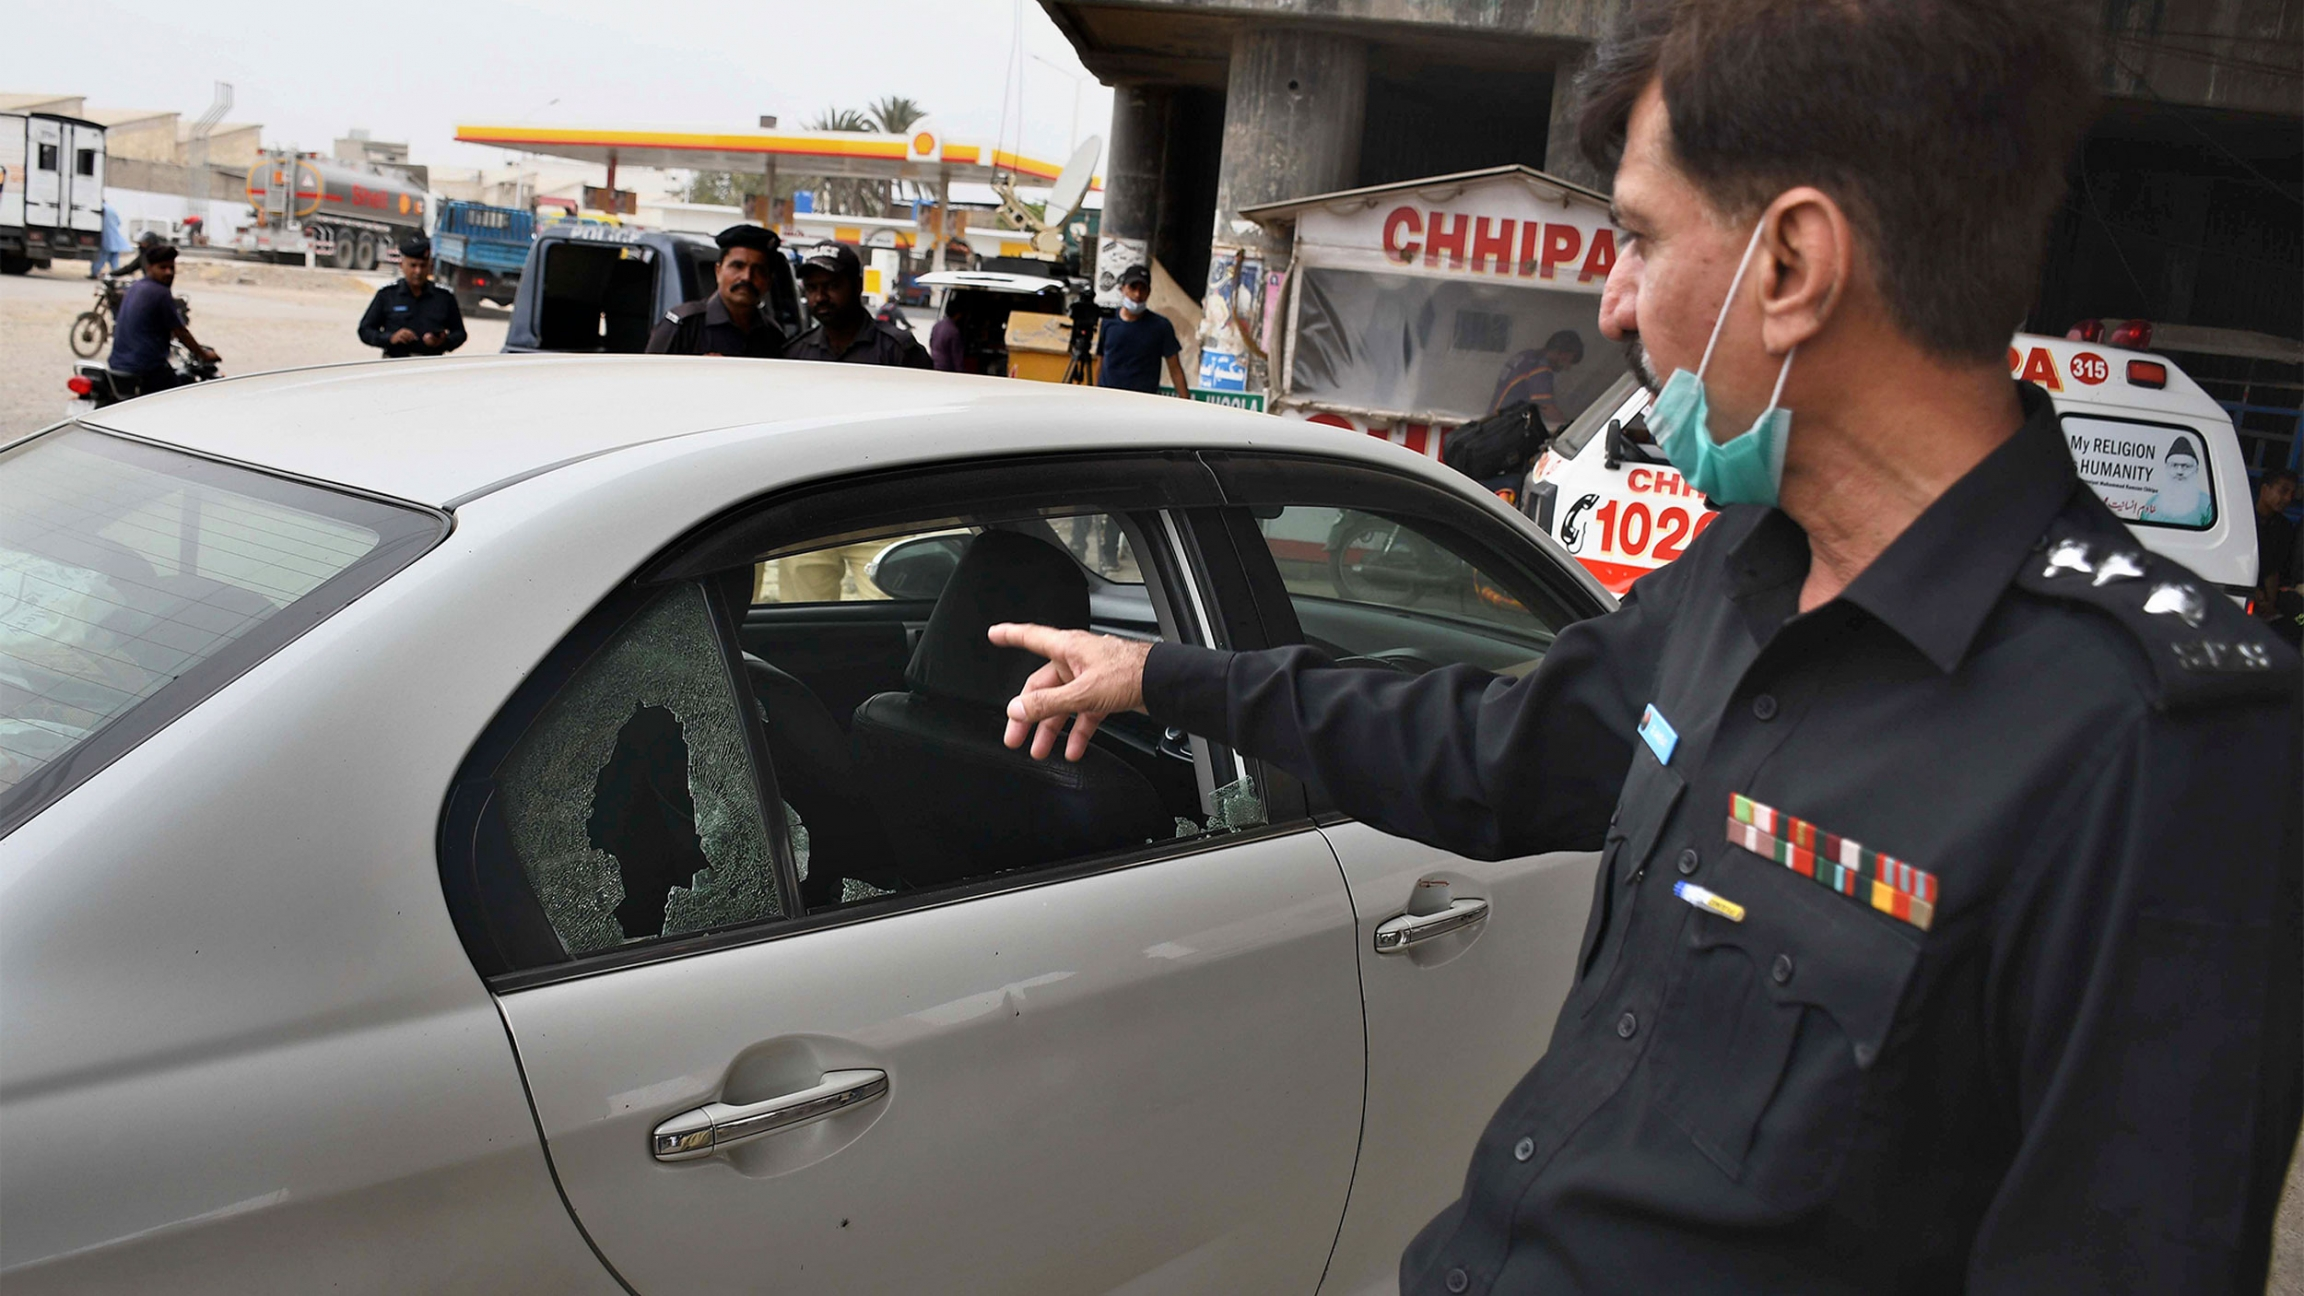 A police officer examines a damaged car at the site of a firing incident, in Karachi, Pakistan